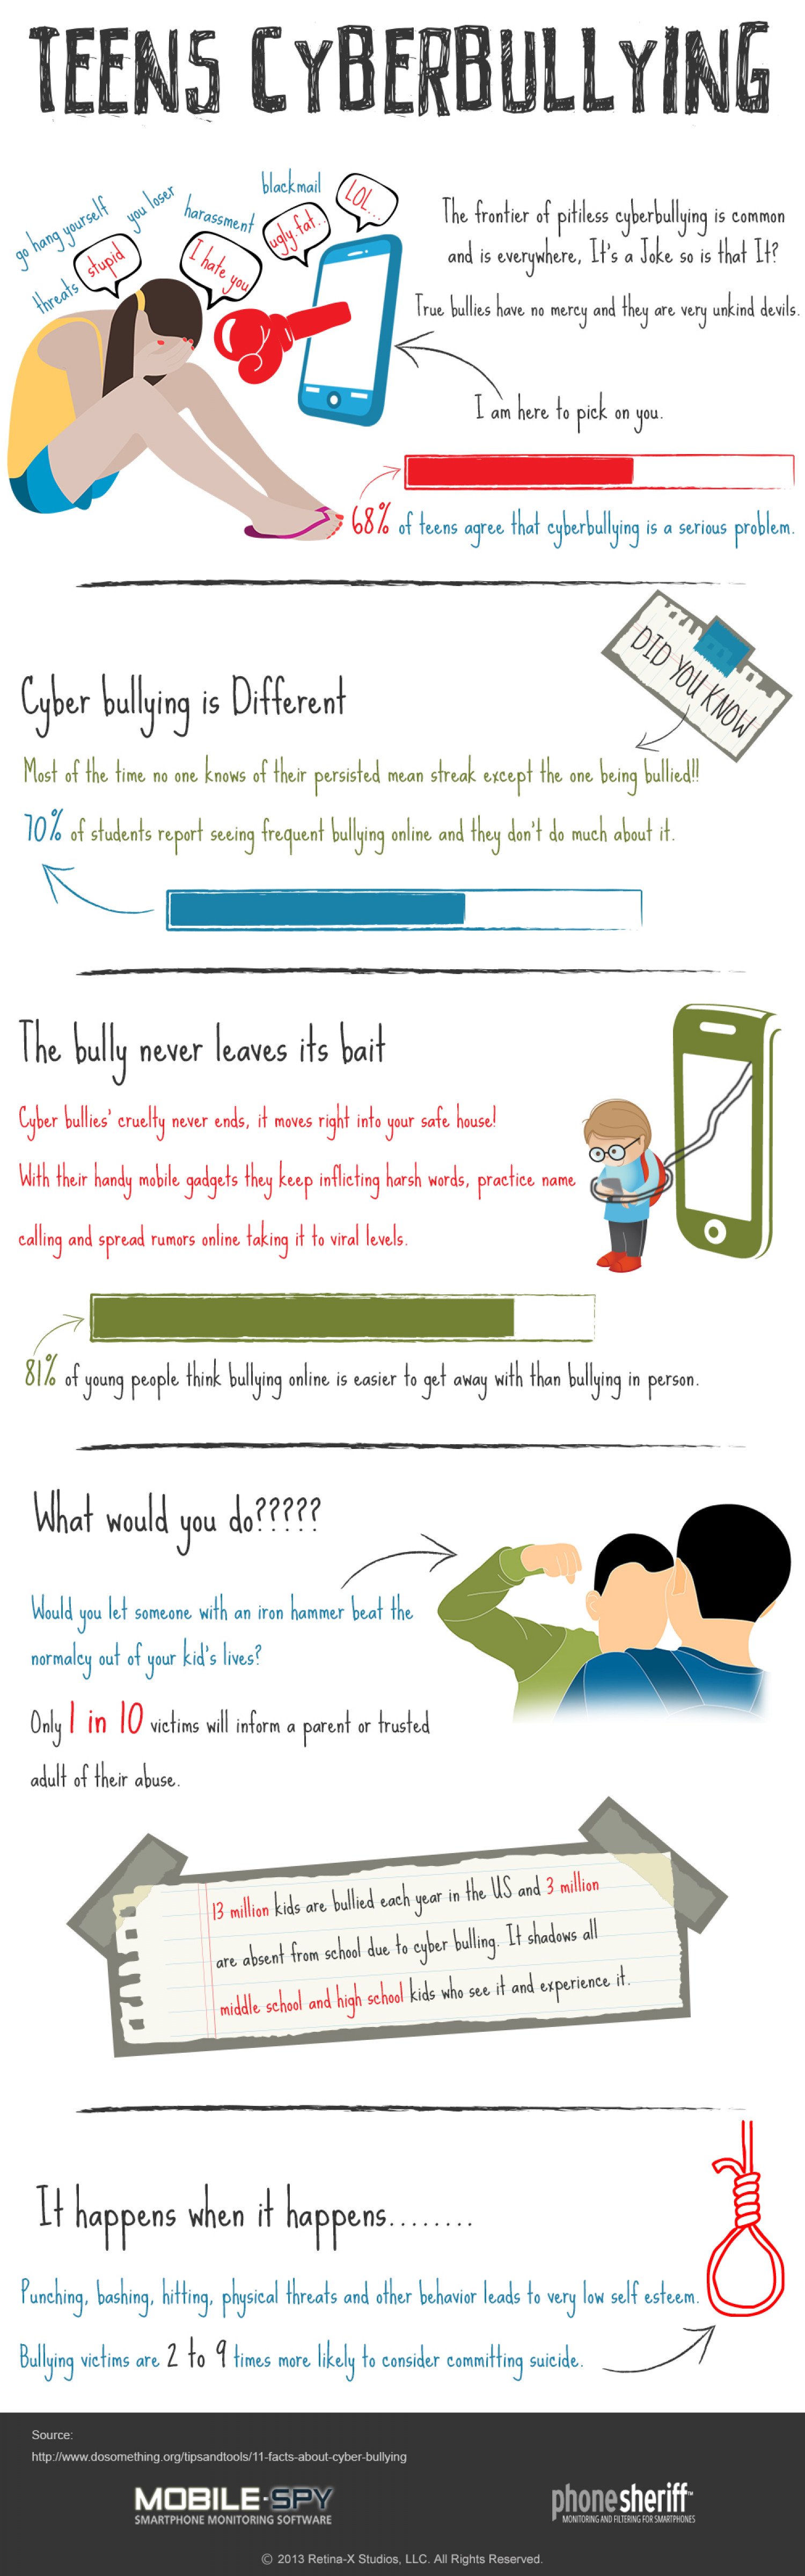 Teens Cyberbullying  Infographic